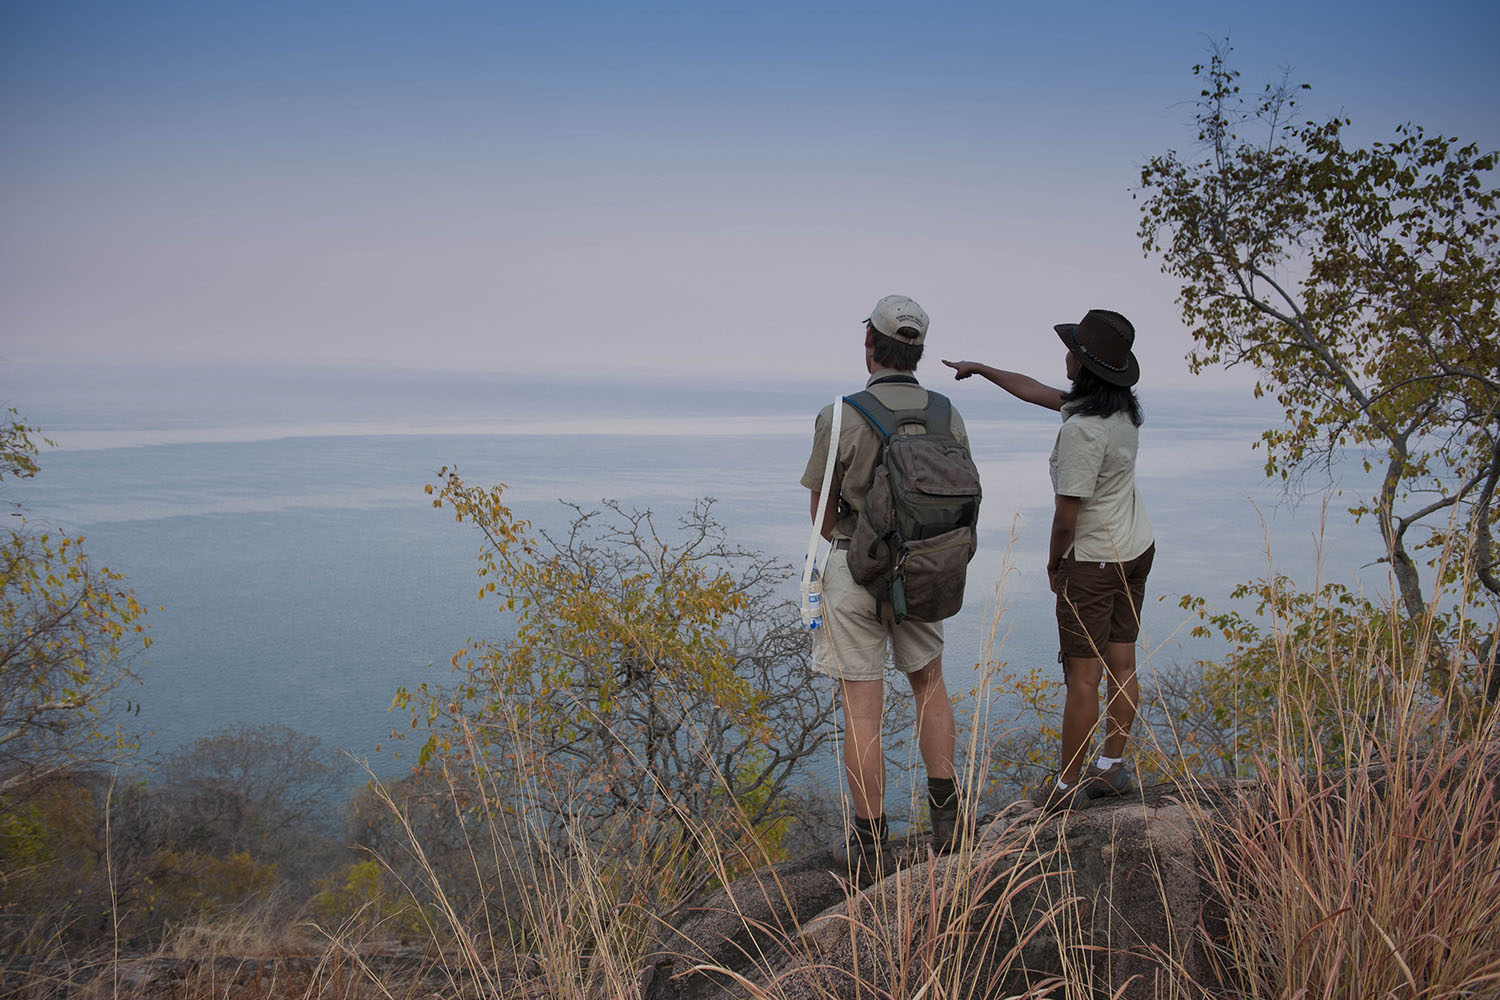 lake malawi national park malawi-national-parks-reserves-malawian-style-malawi-adventures-experiences-specialist-tour-operator-hiking-pumulani